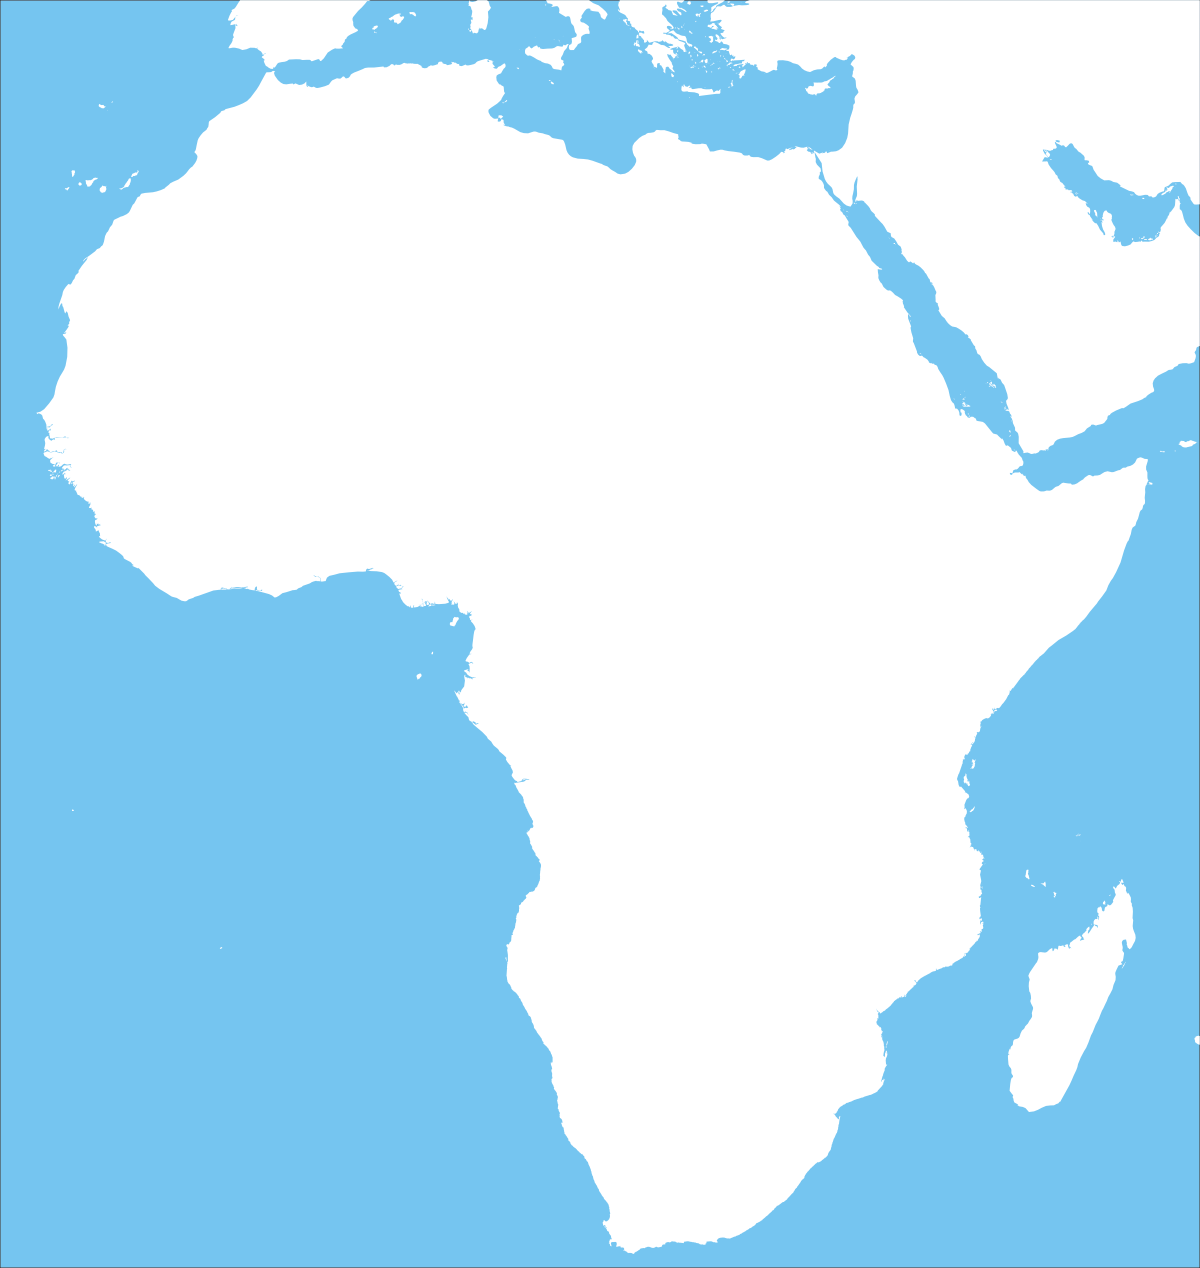 All blue blank Africa map outline image.